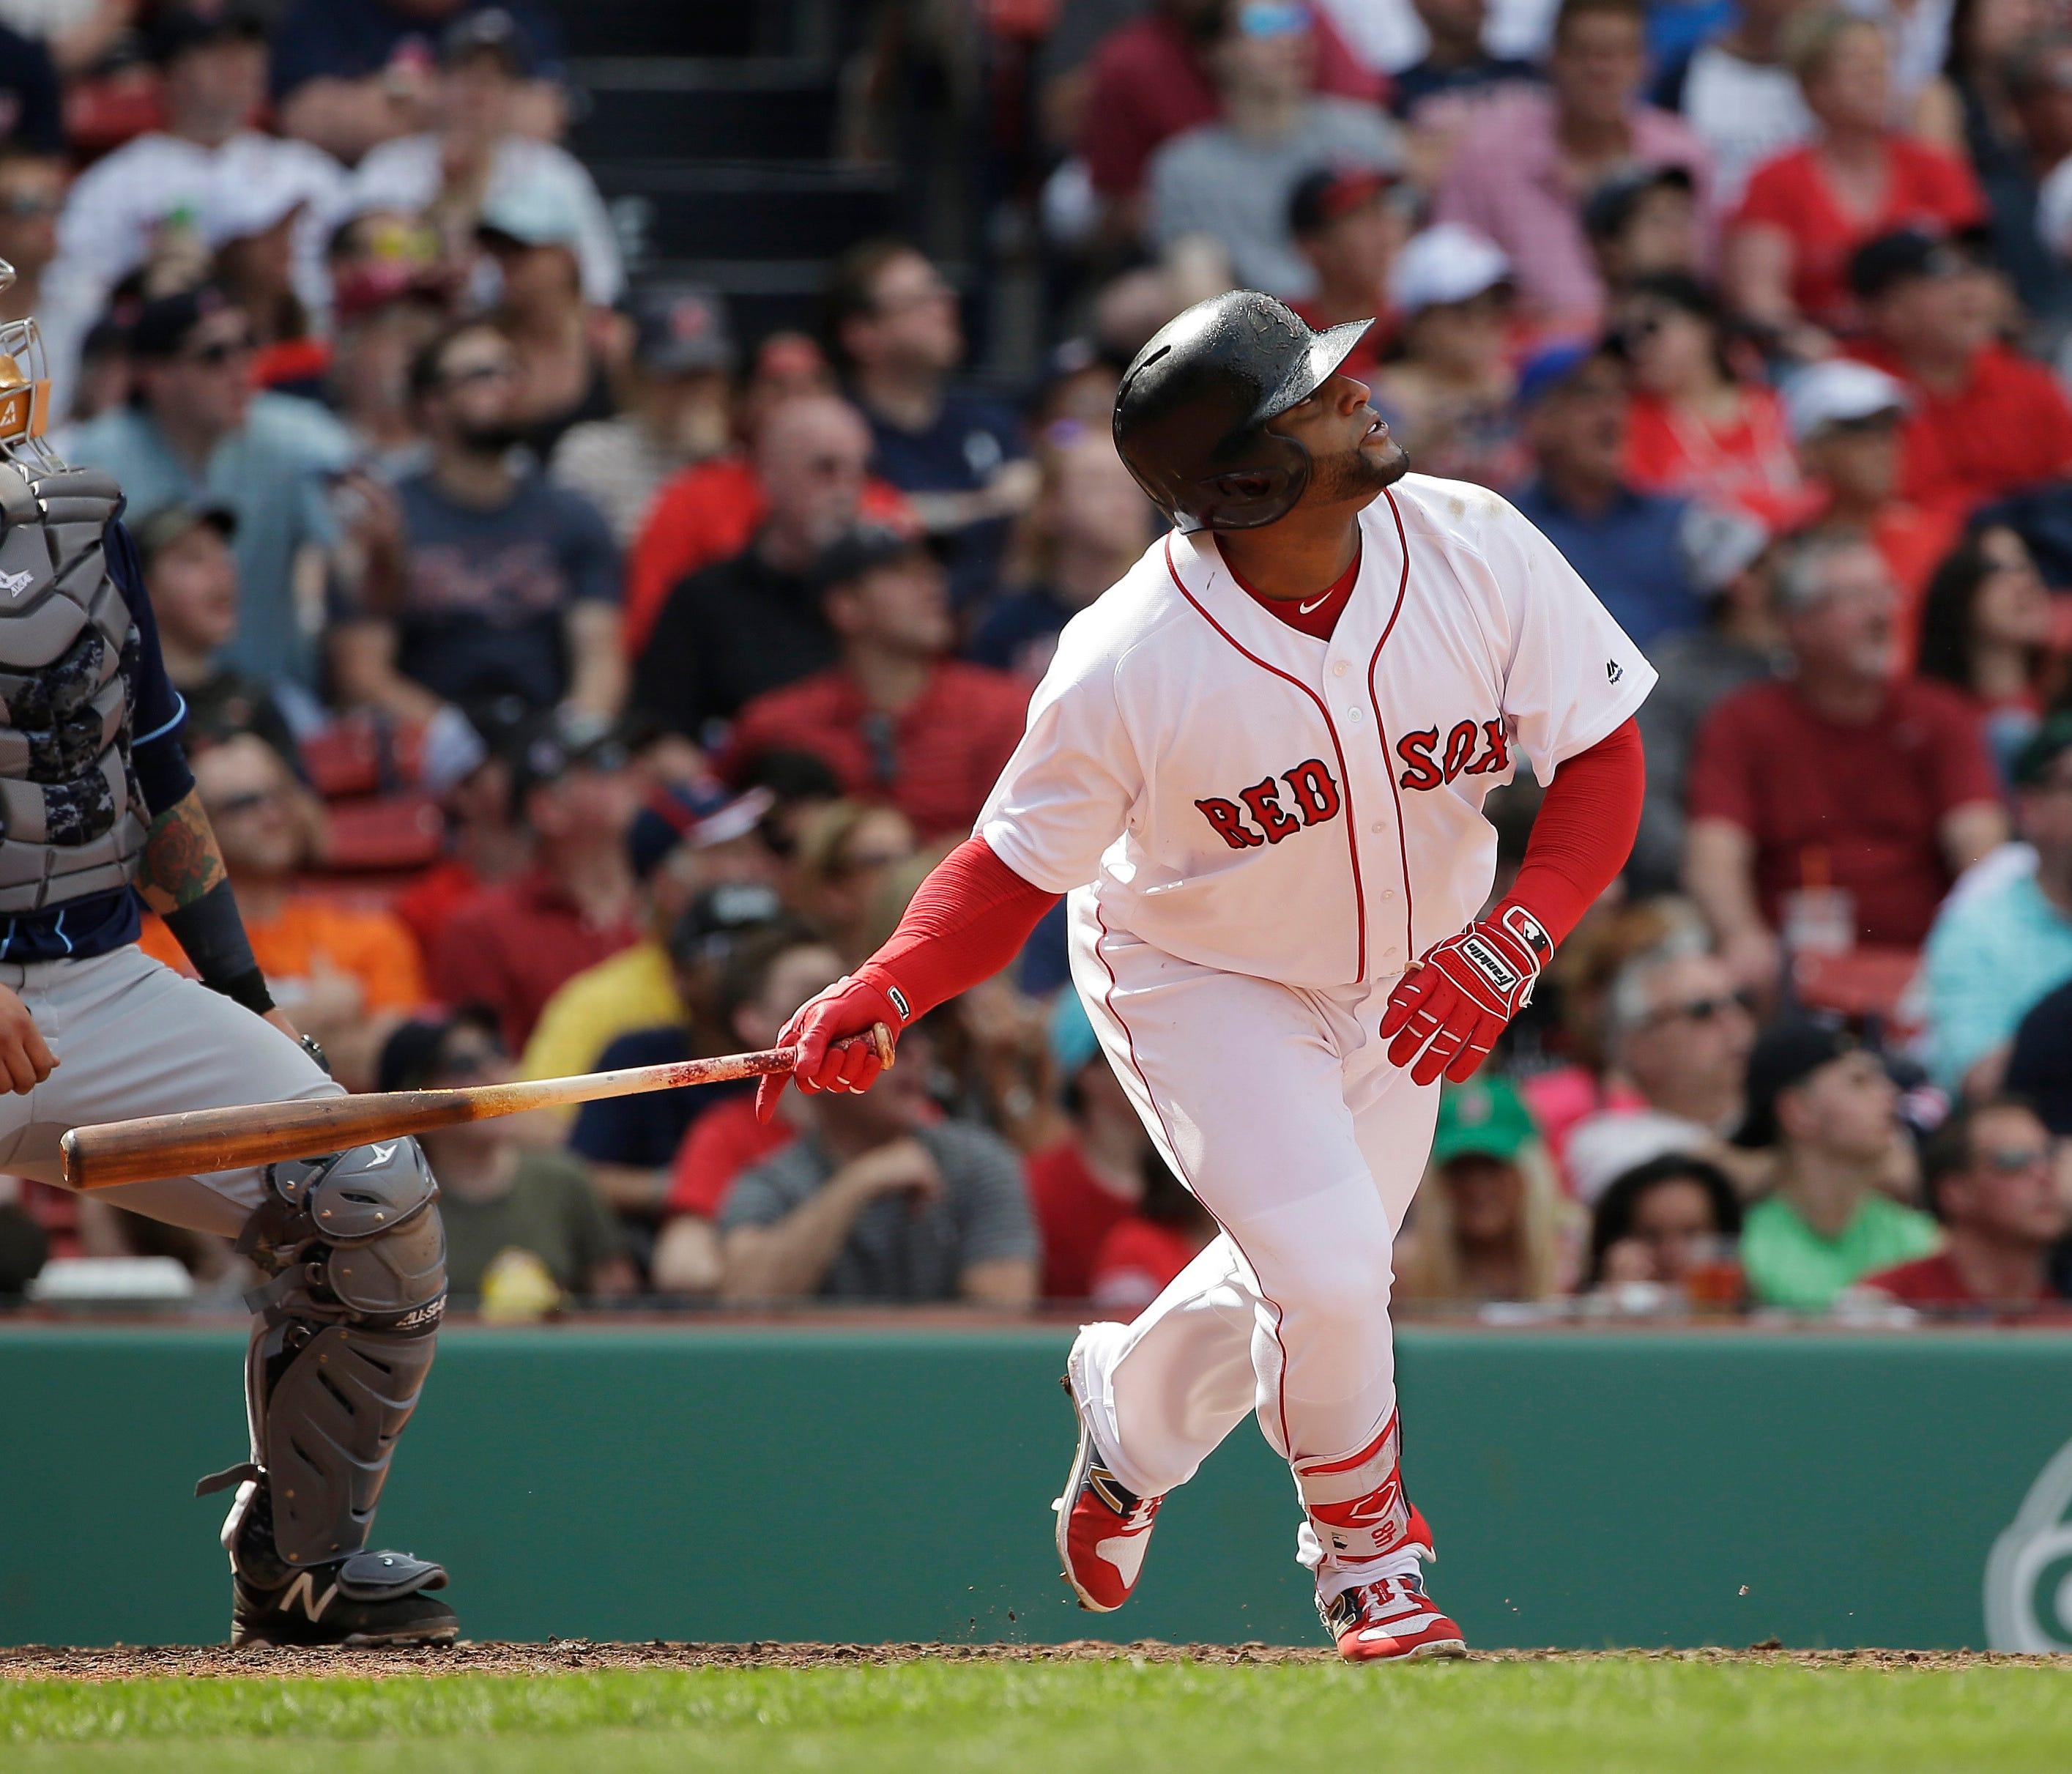 Boston Red Sox's Pablo Sandoval, right, watches the flight of his two-run home run as Tampa Bay Rays catcher Jesus Sucre, left, looks on in the fourth inning of a baseball game, Sunday, April 16, 2017, in Boston. (AP Photo/Steven Senne)